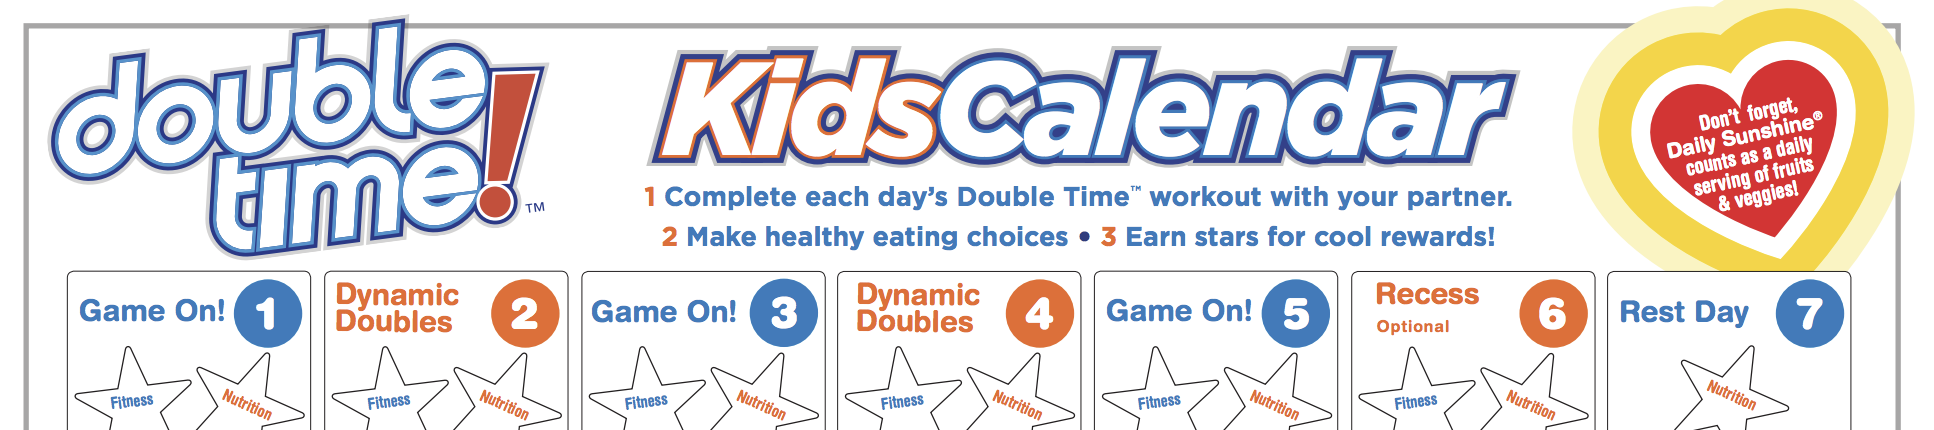 Get Free kids calendar - Lock in your spot by midnight on Halloween and receive an exclusive 30-day kids calendar & reward ideas.